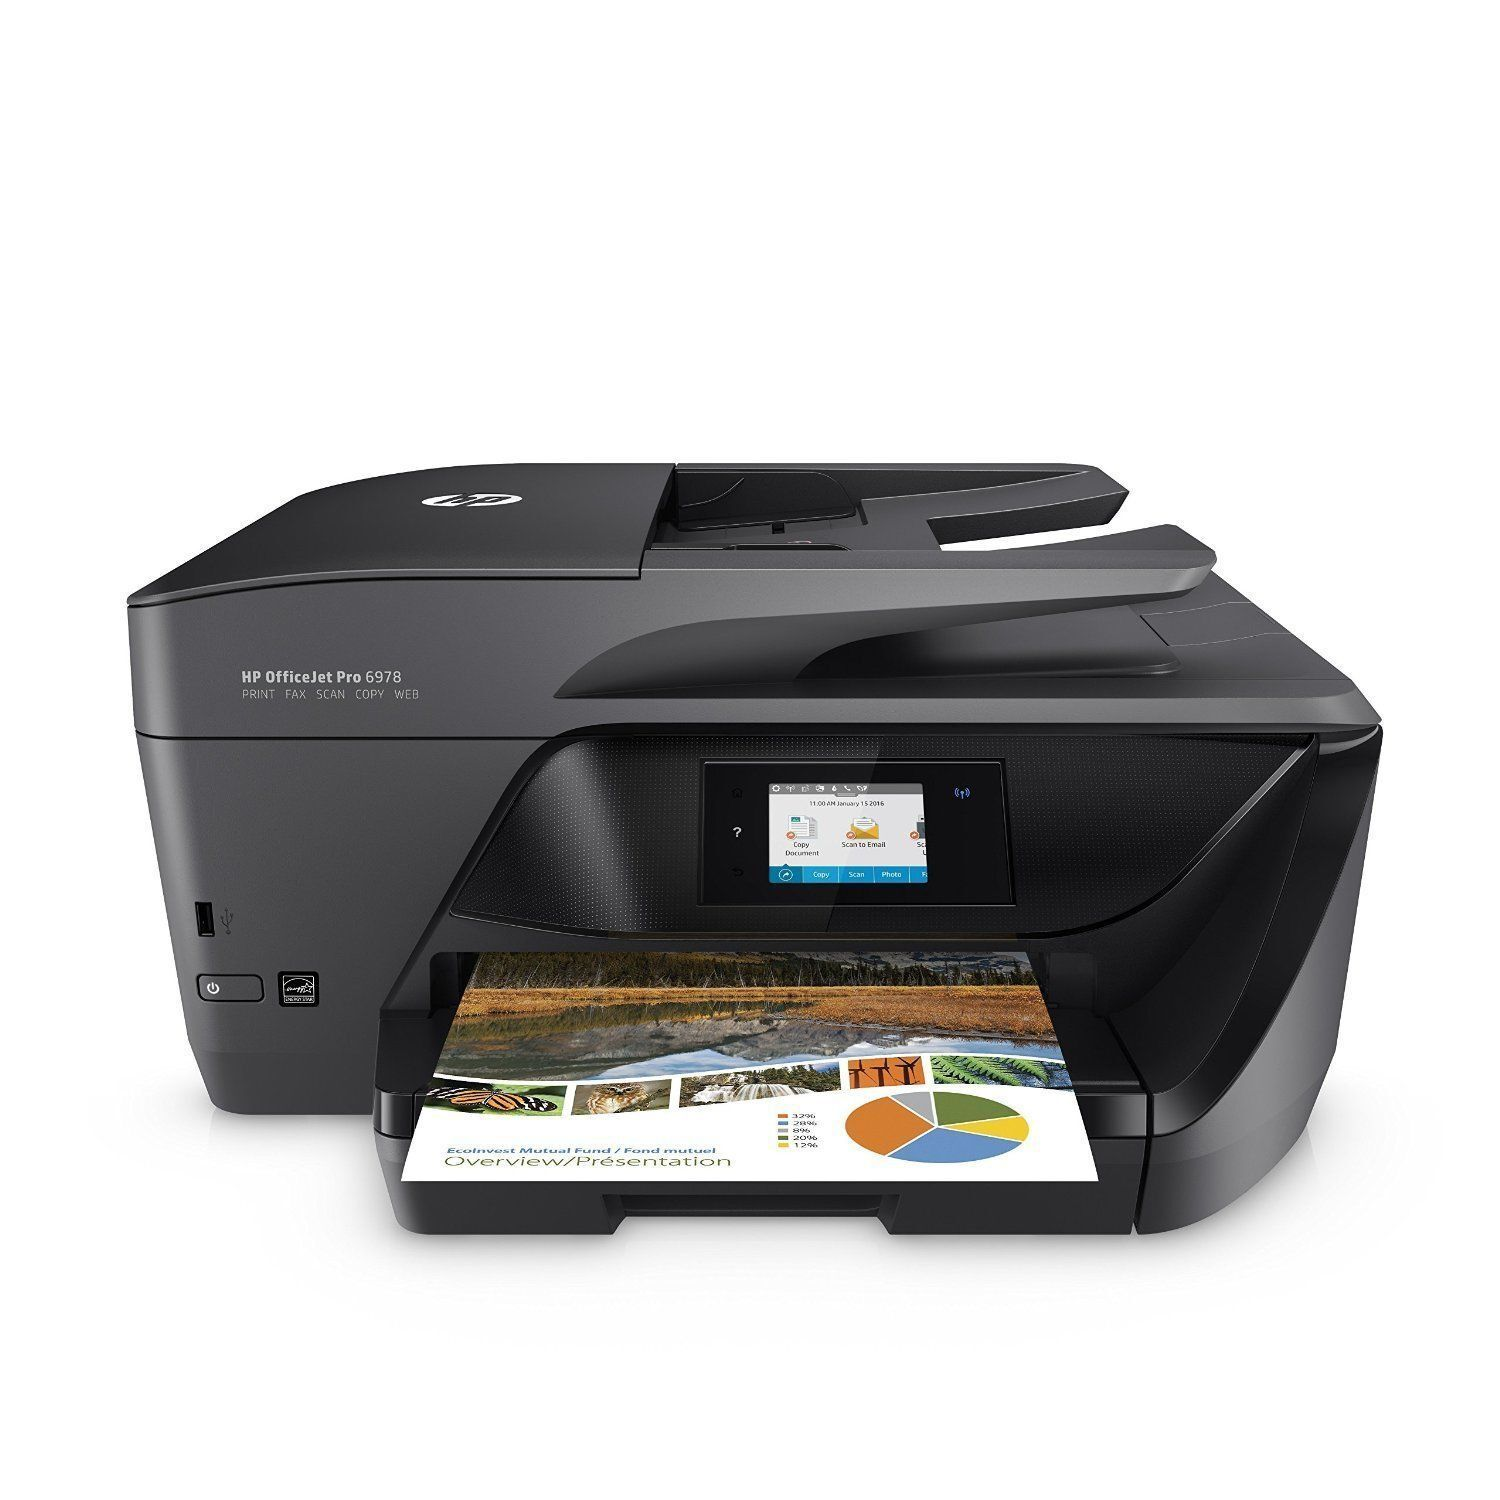 DELL A910 PRINTER DRIVERS PC